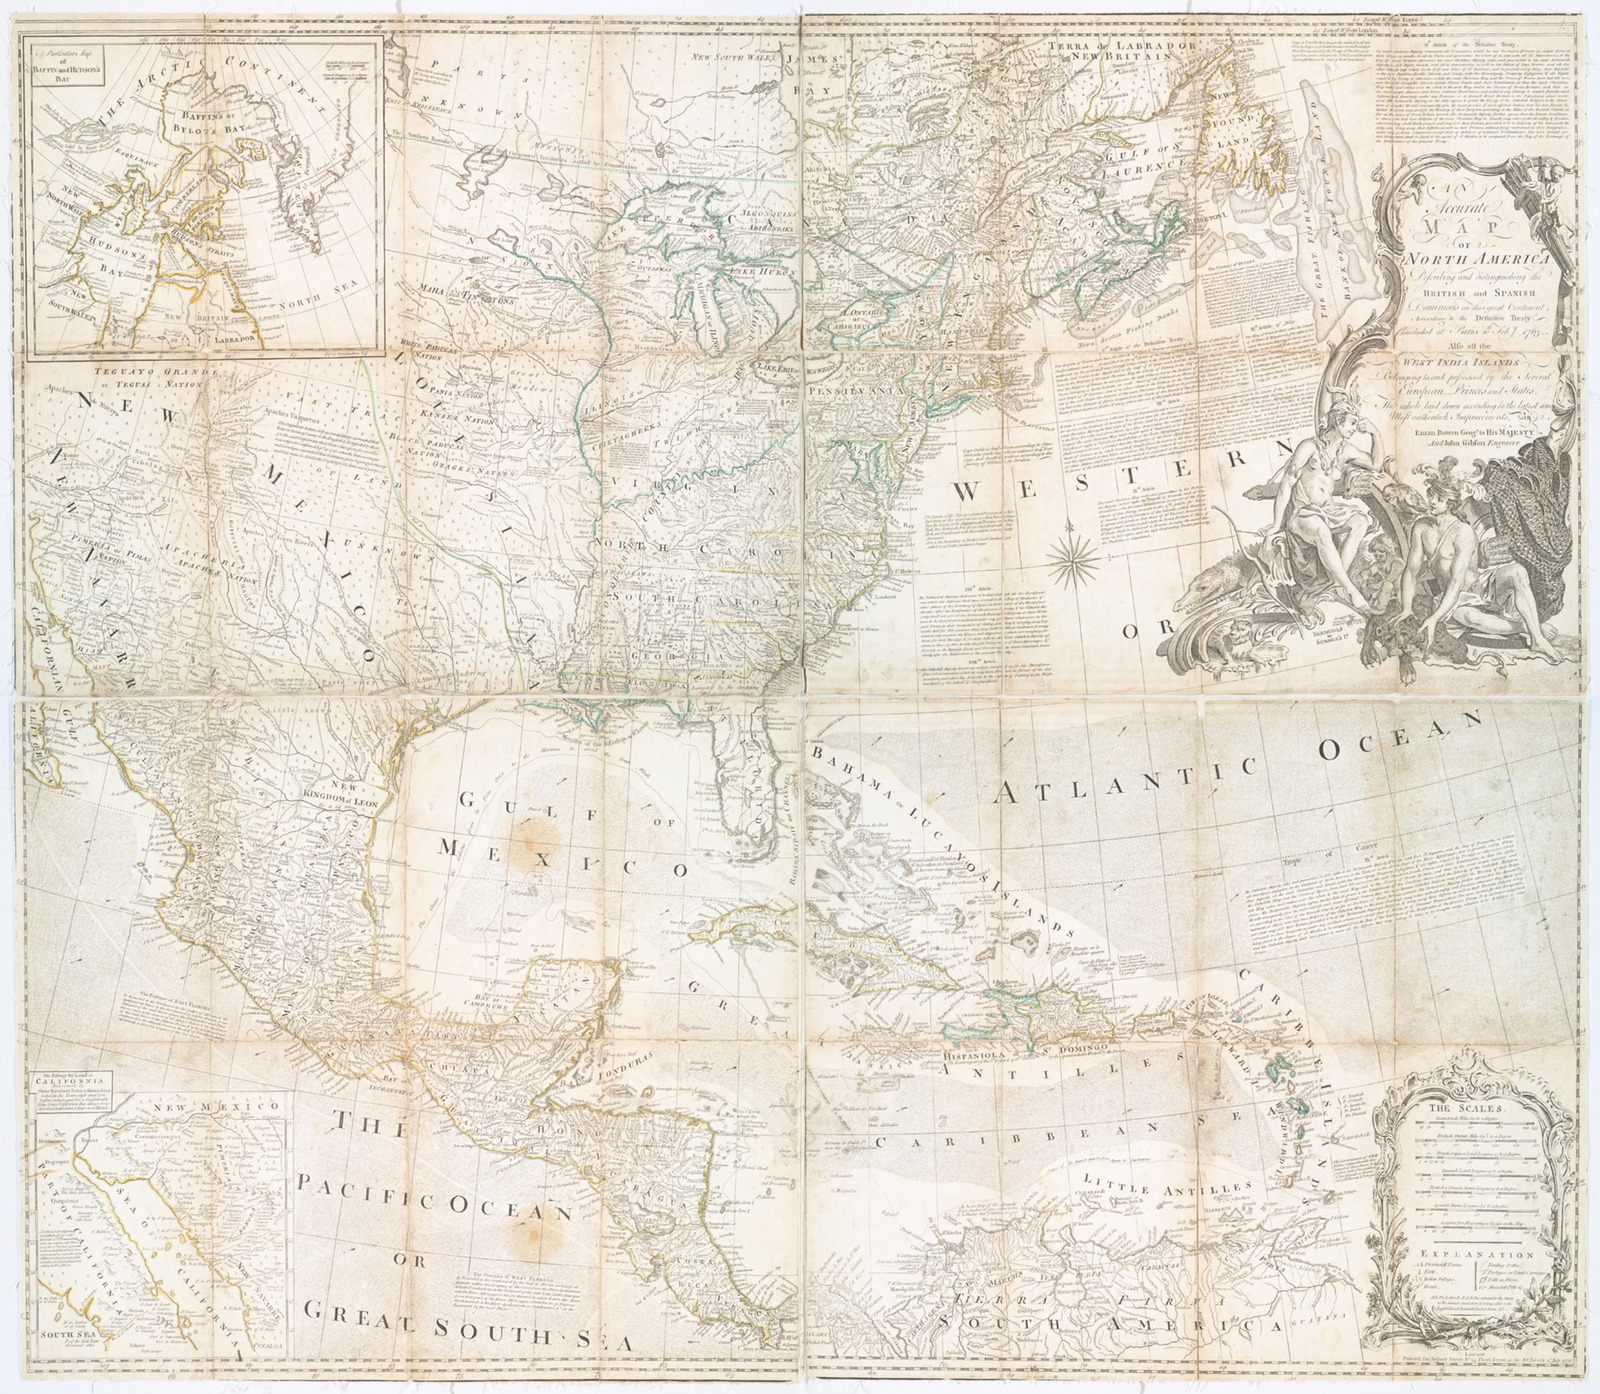 An accurate map of North America : describing and distinguishing the British and Spanish dominions of this great continent according to the definitive treaty concluded at Paris 10th Feby. 1763 : also all the West India Islands belonging to, and possessed by the several European princes and states